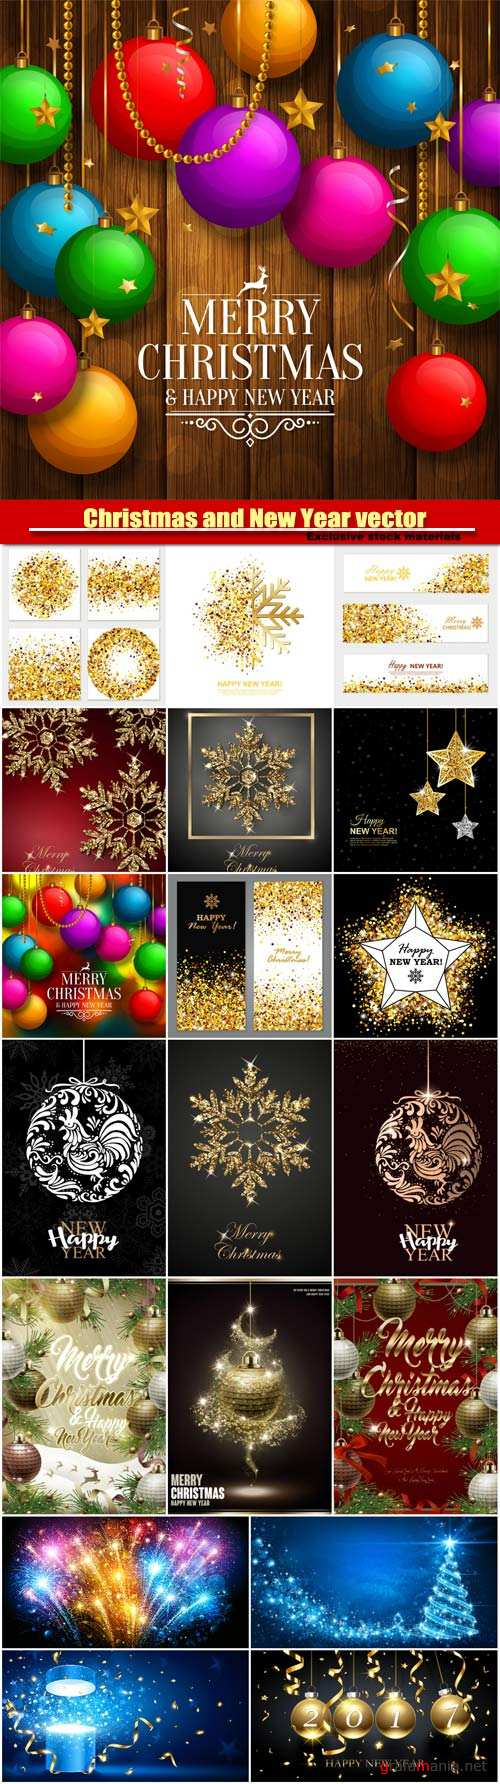 Christmas and New Year vector background, colorful balls, golden stars